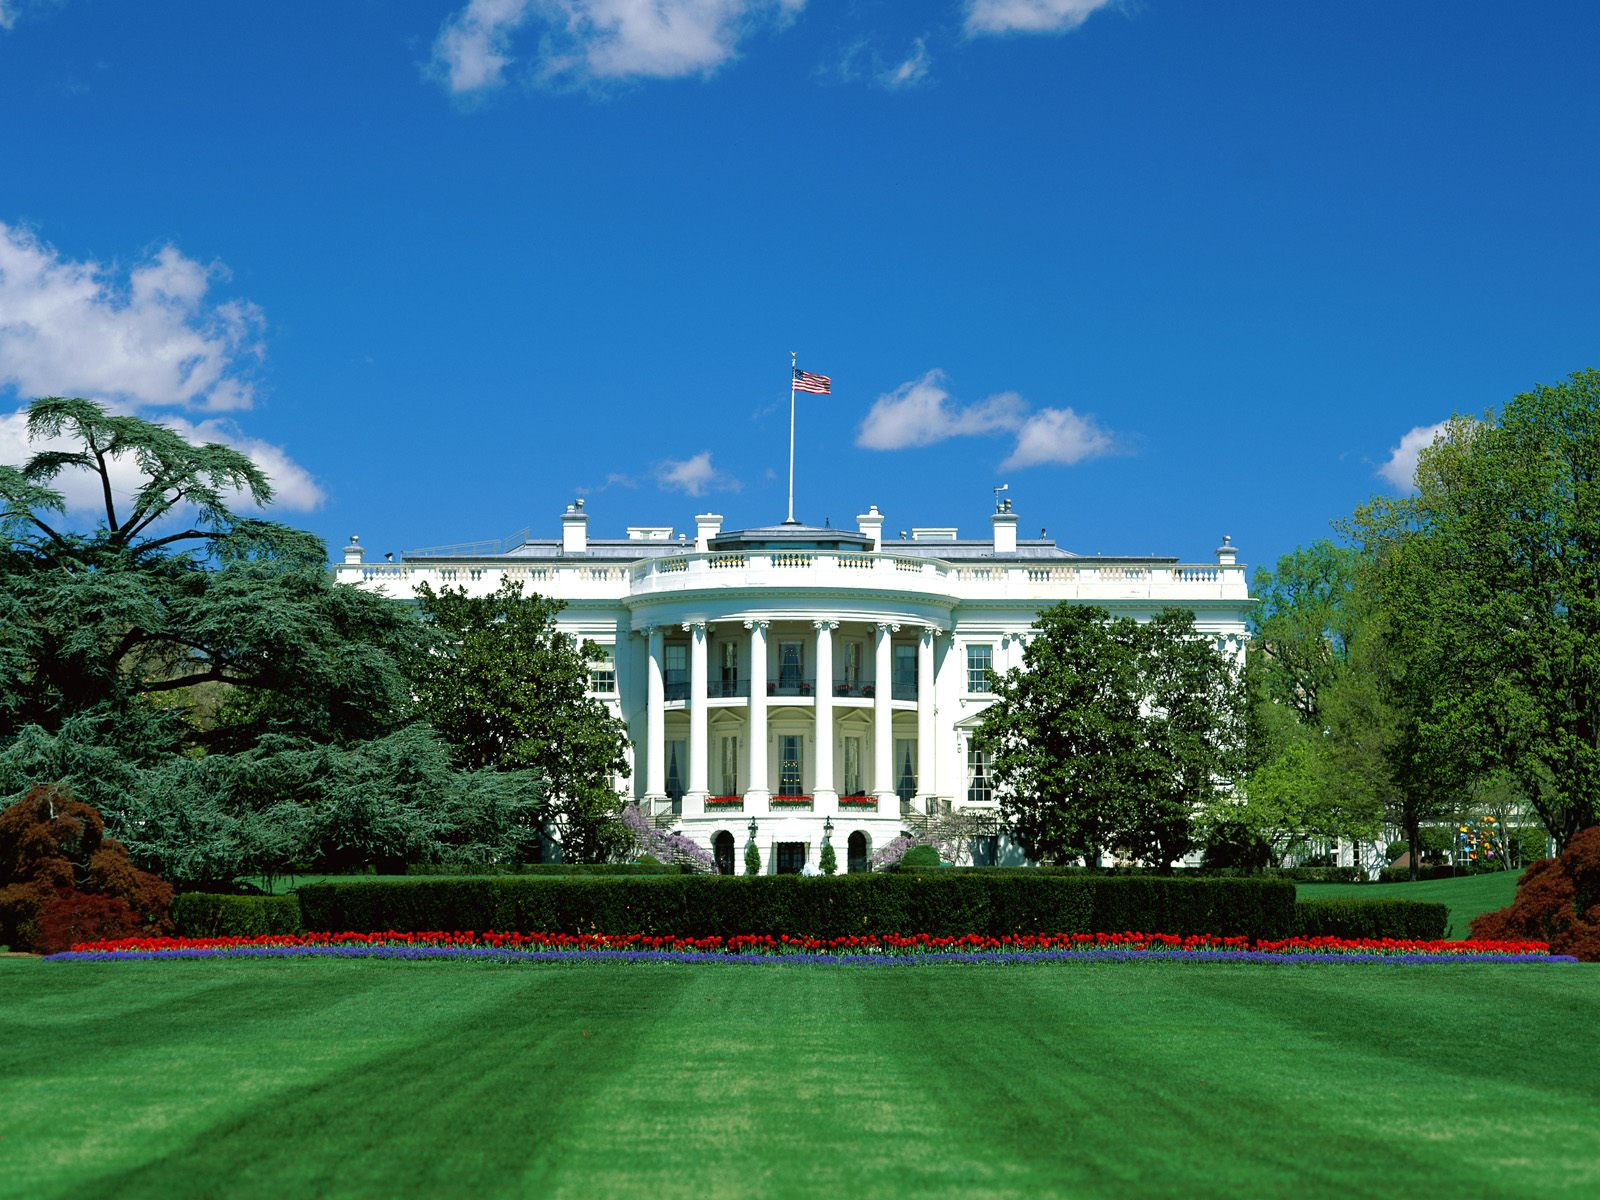 PPA petition may receive White House response